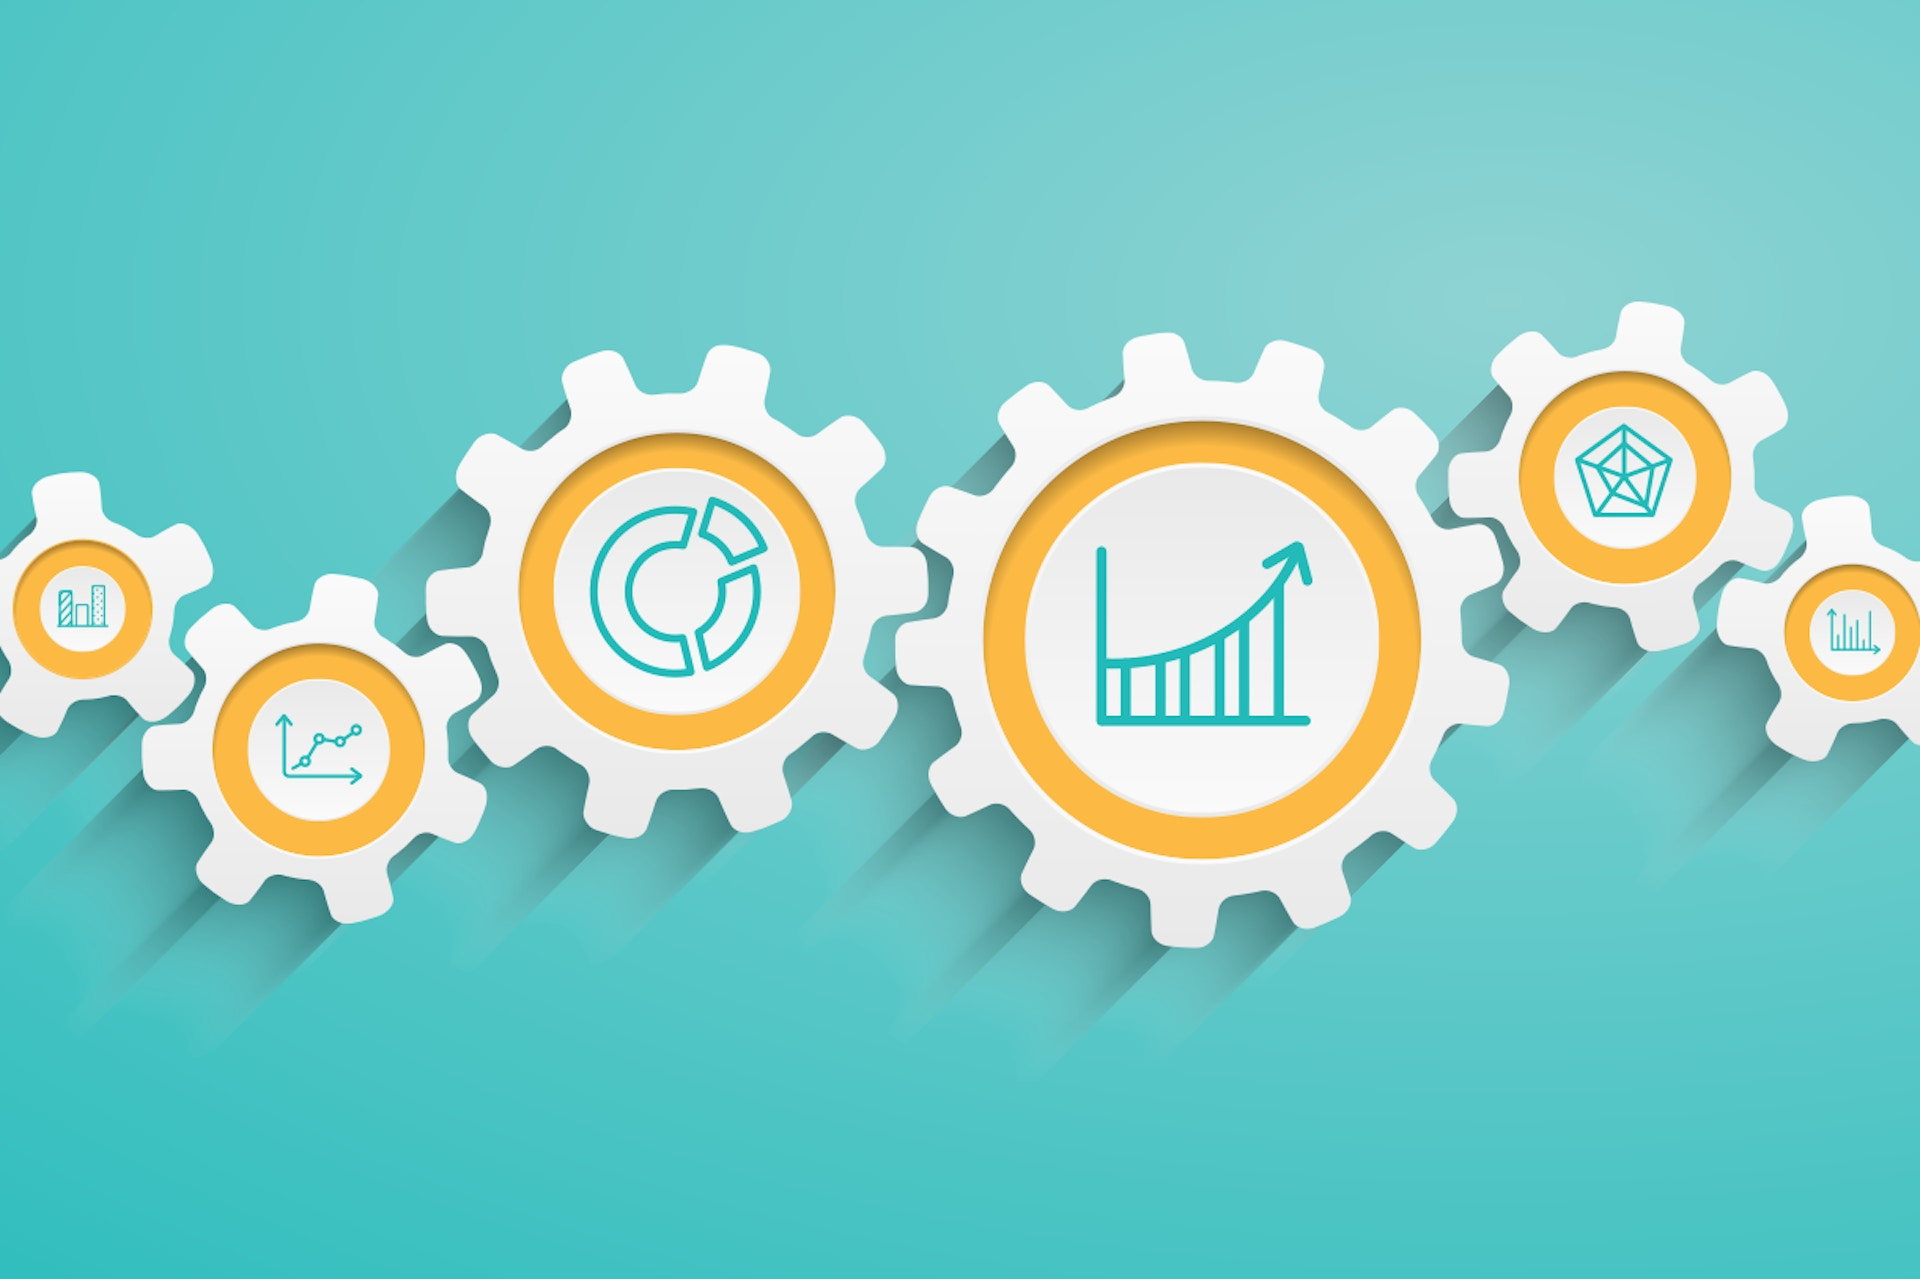 gears with analytical icons